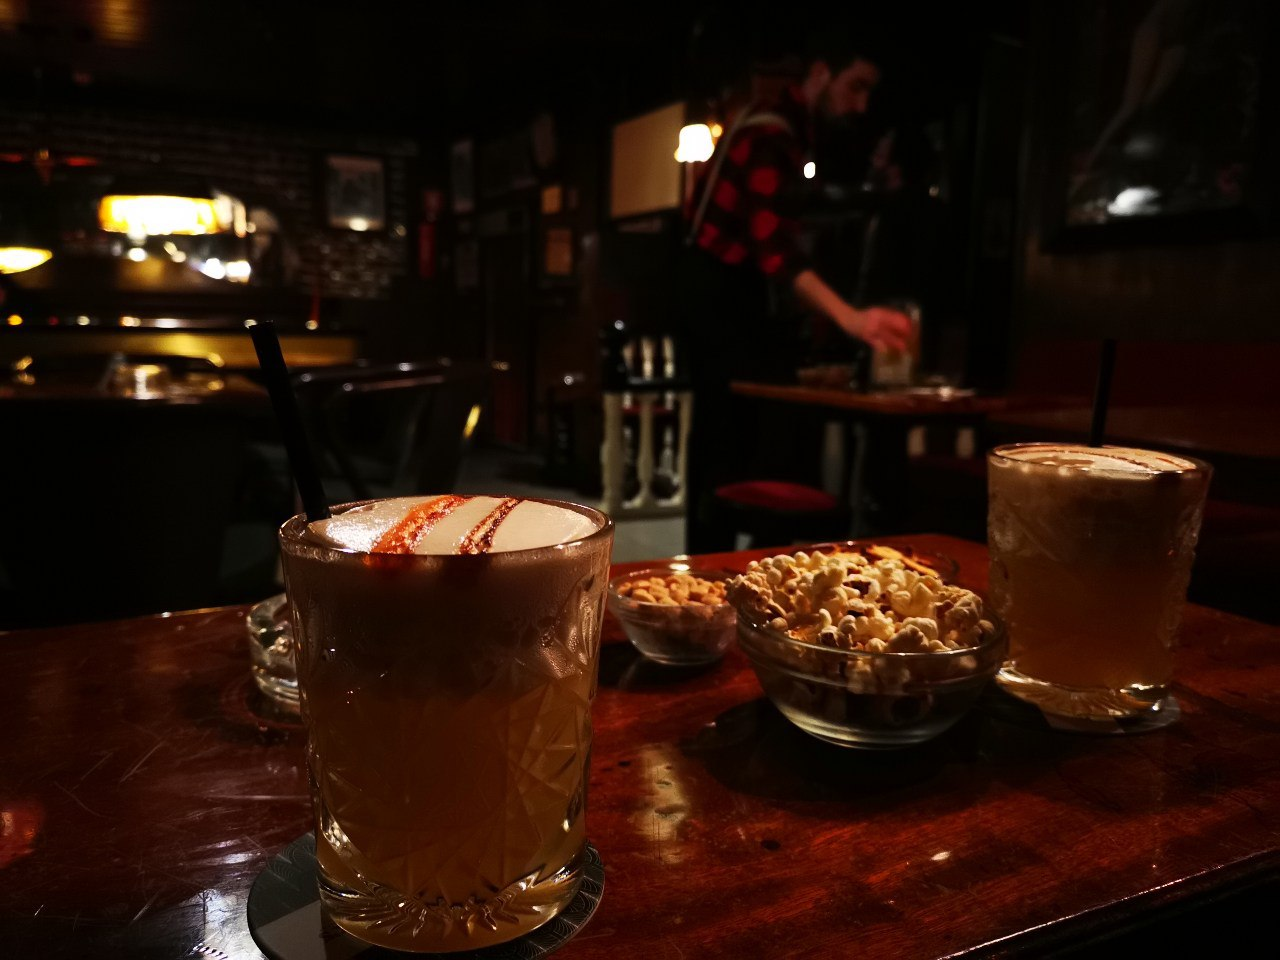 Lisbon stopover pre Madrid. A Whiskey Sour served at Fox Trott. The hilly Lisbon streets hide the best spaces little owner run cocktail bars that have the freedom and motivation to develop truly unique product.